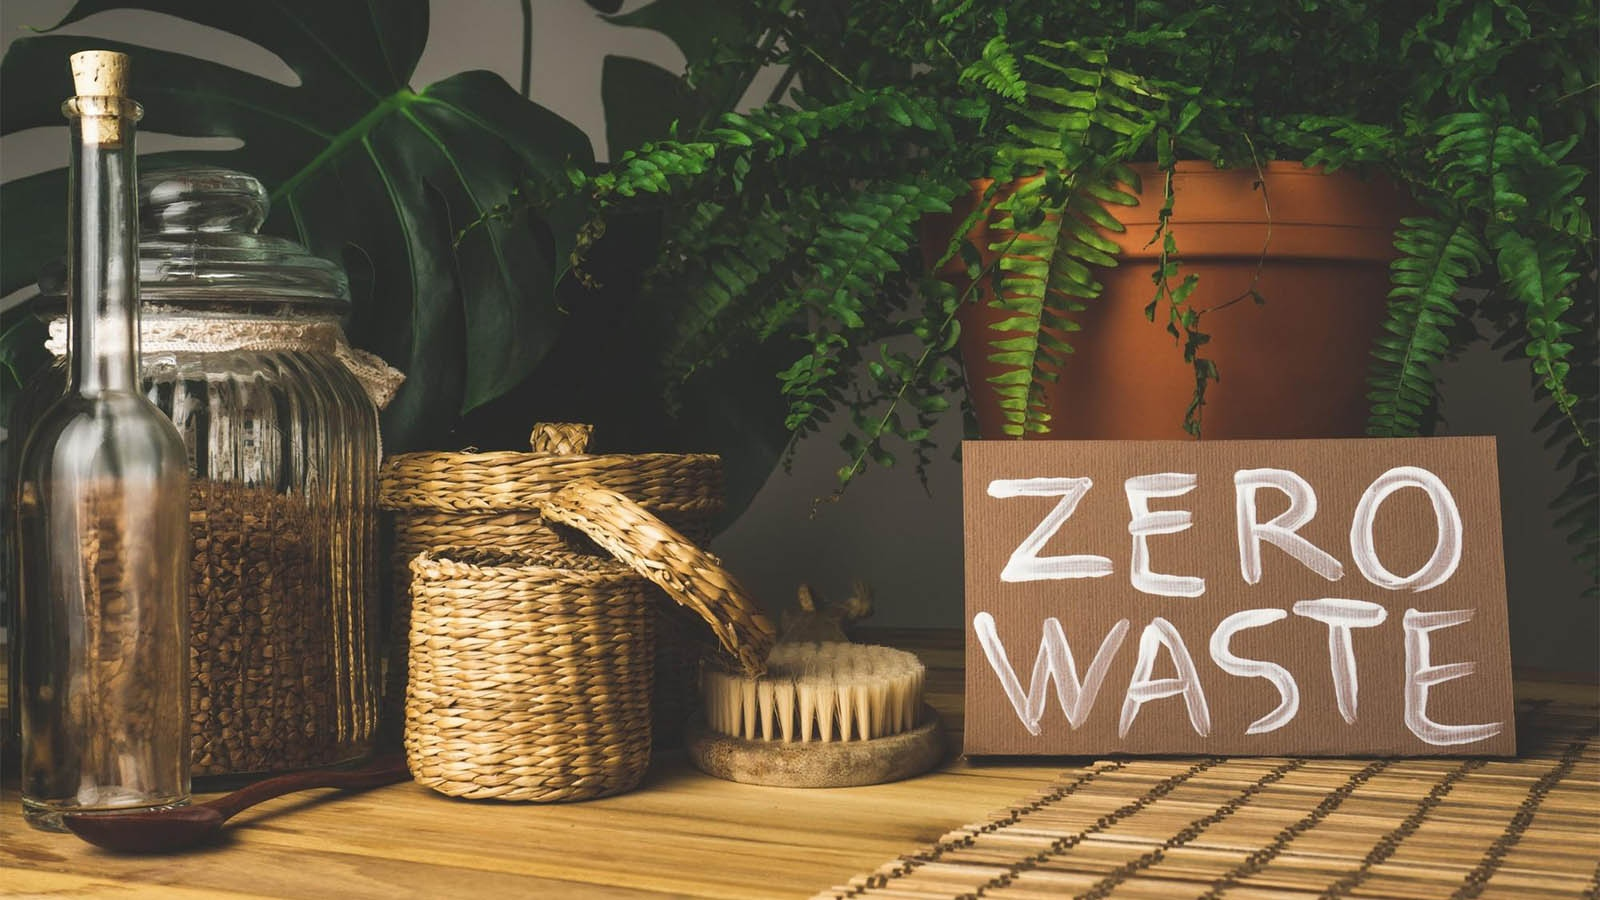 Design your own zero waste kitchen at the 11th Kitchen Show!